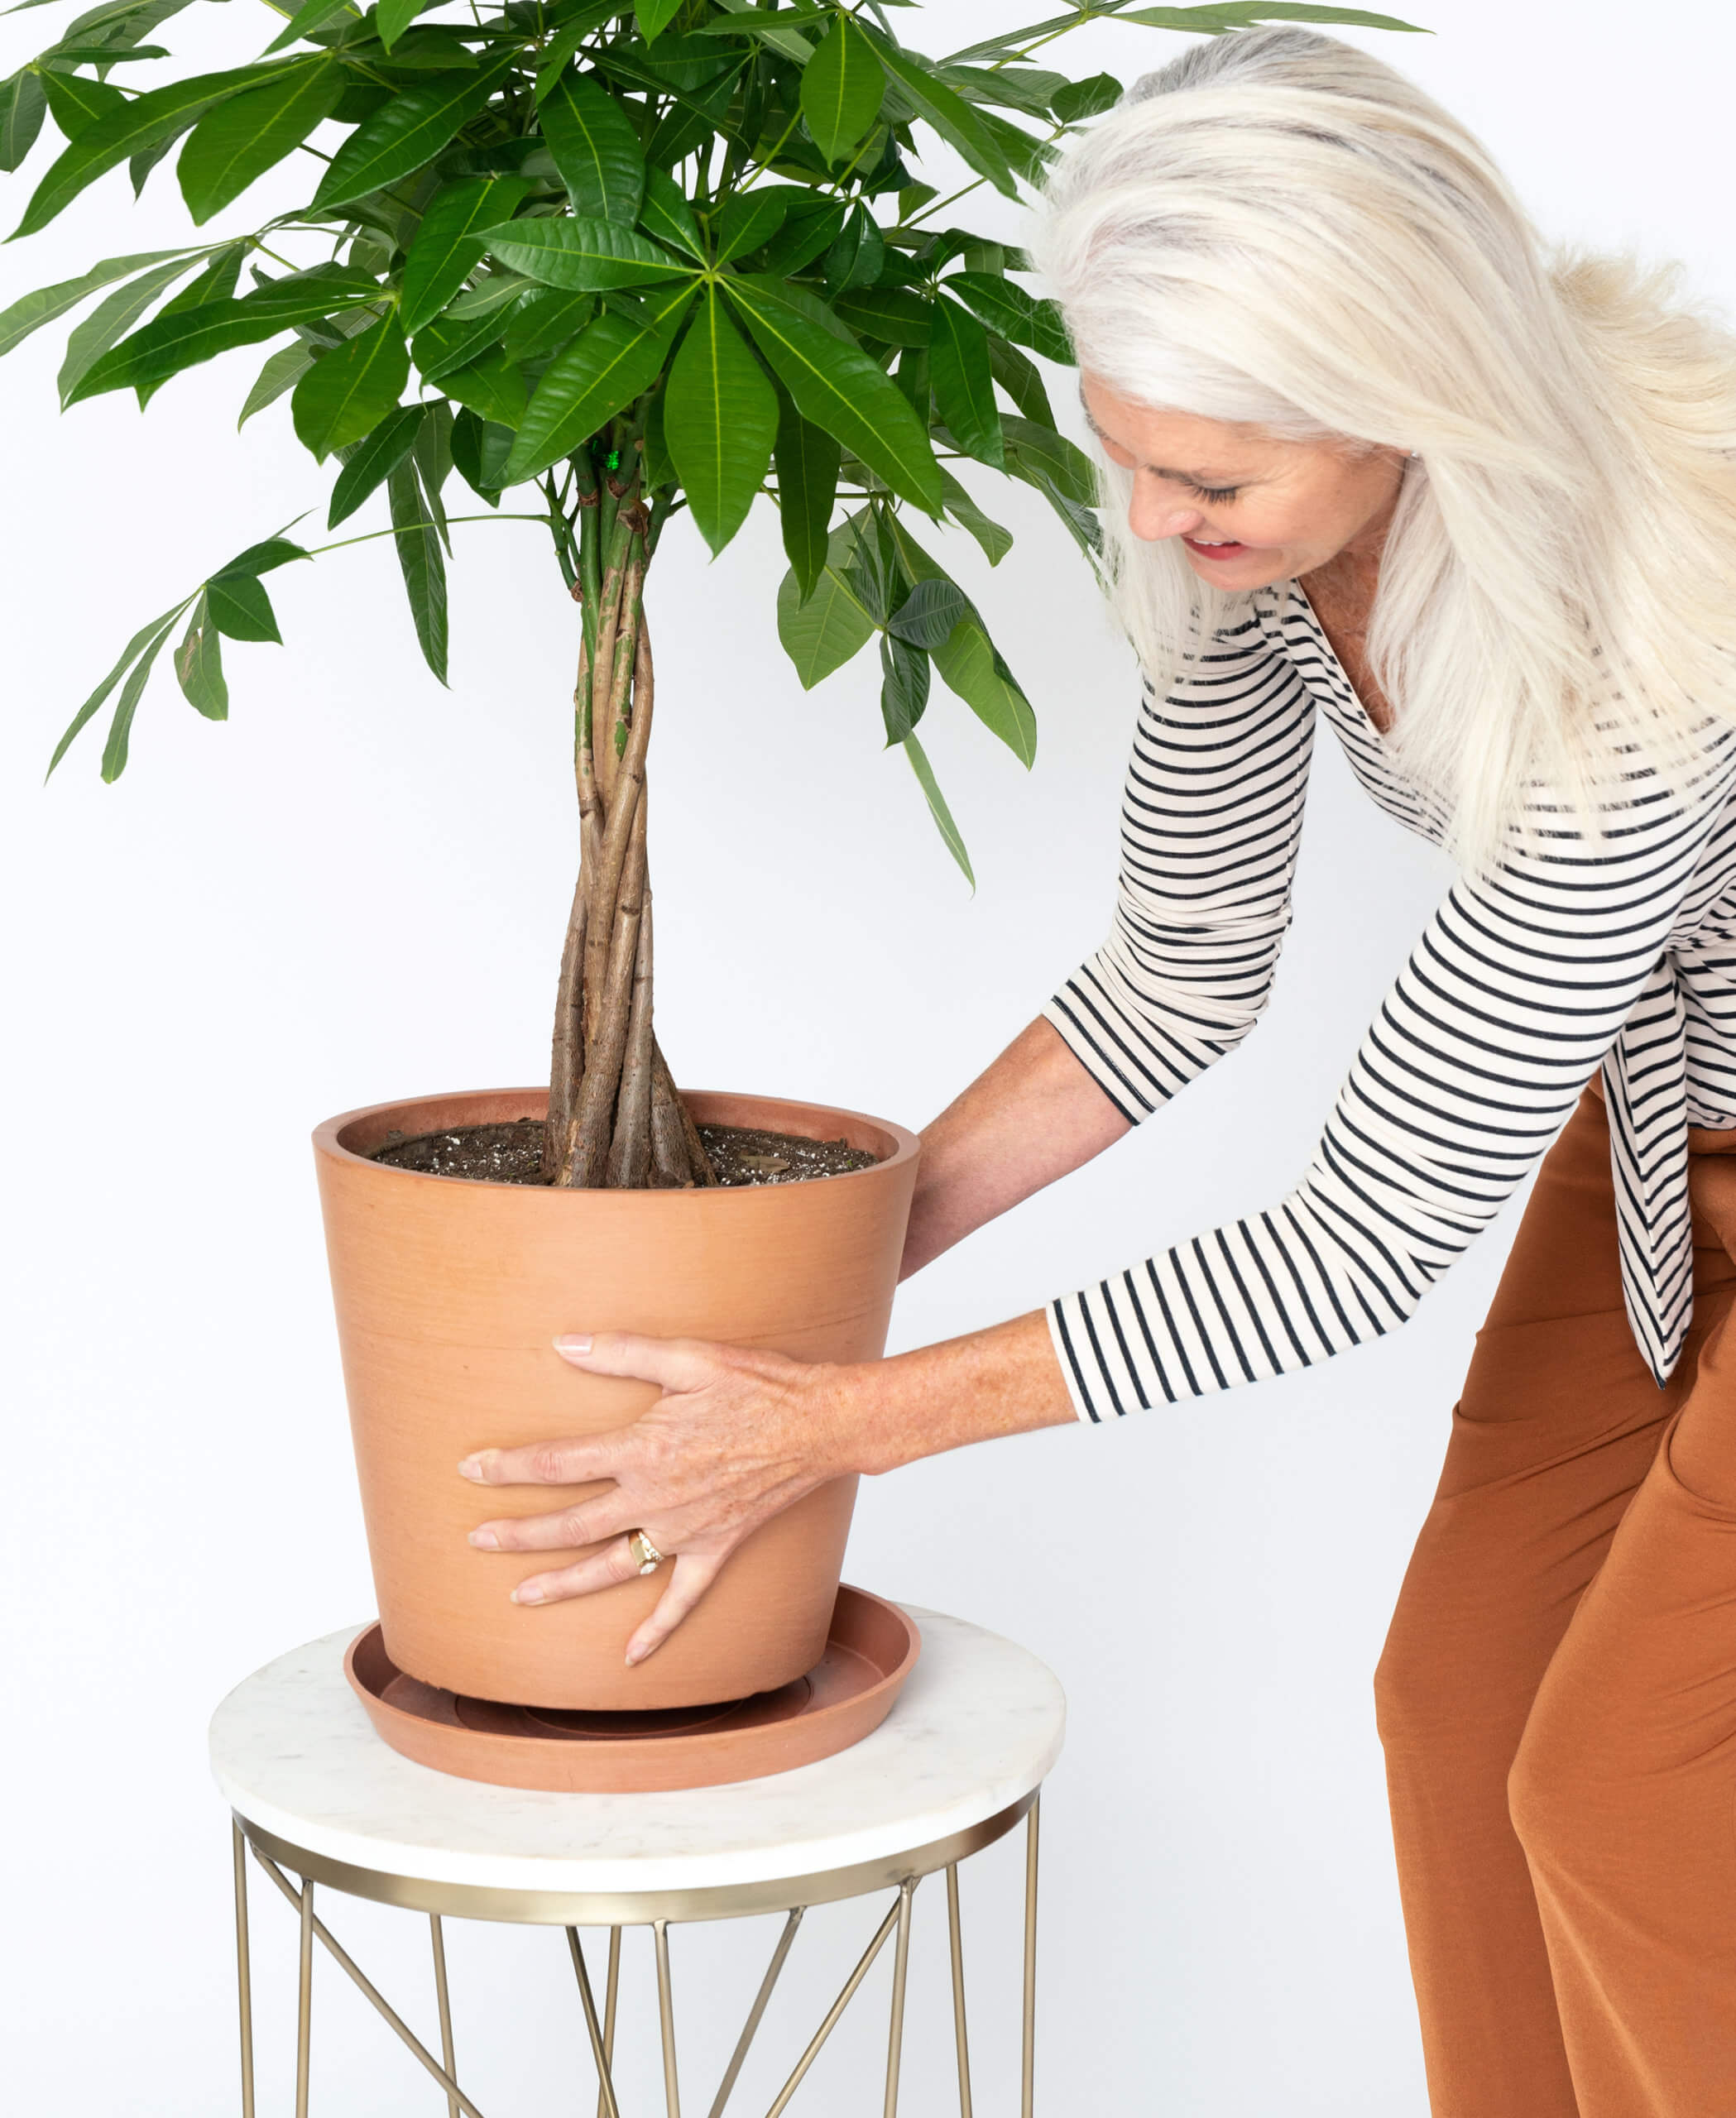 Buy Large Potted Money Tree Indoor Plant Bloomscape